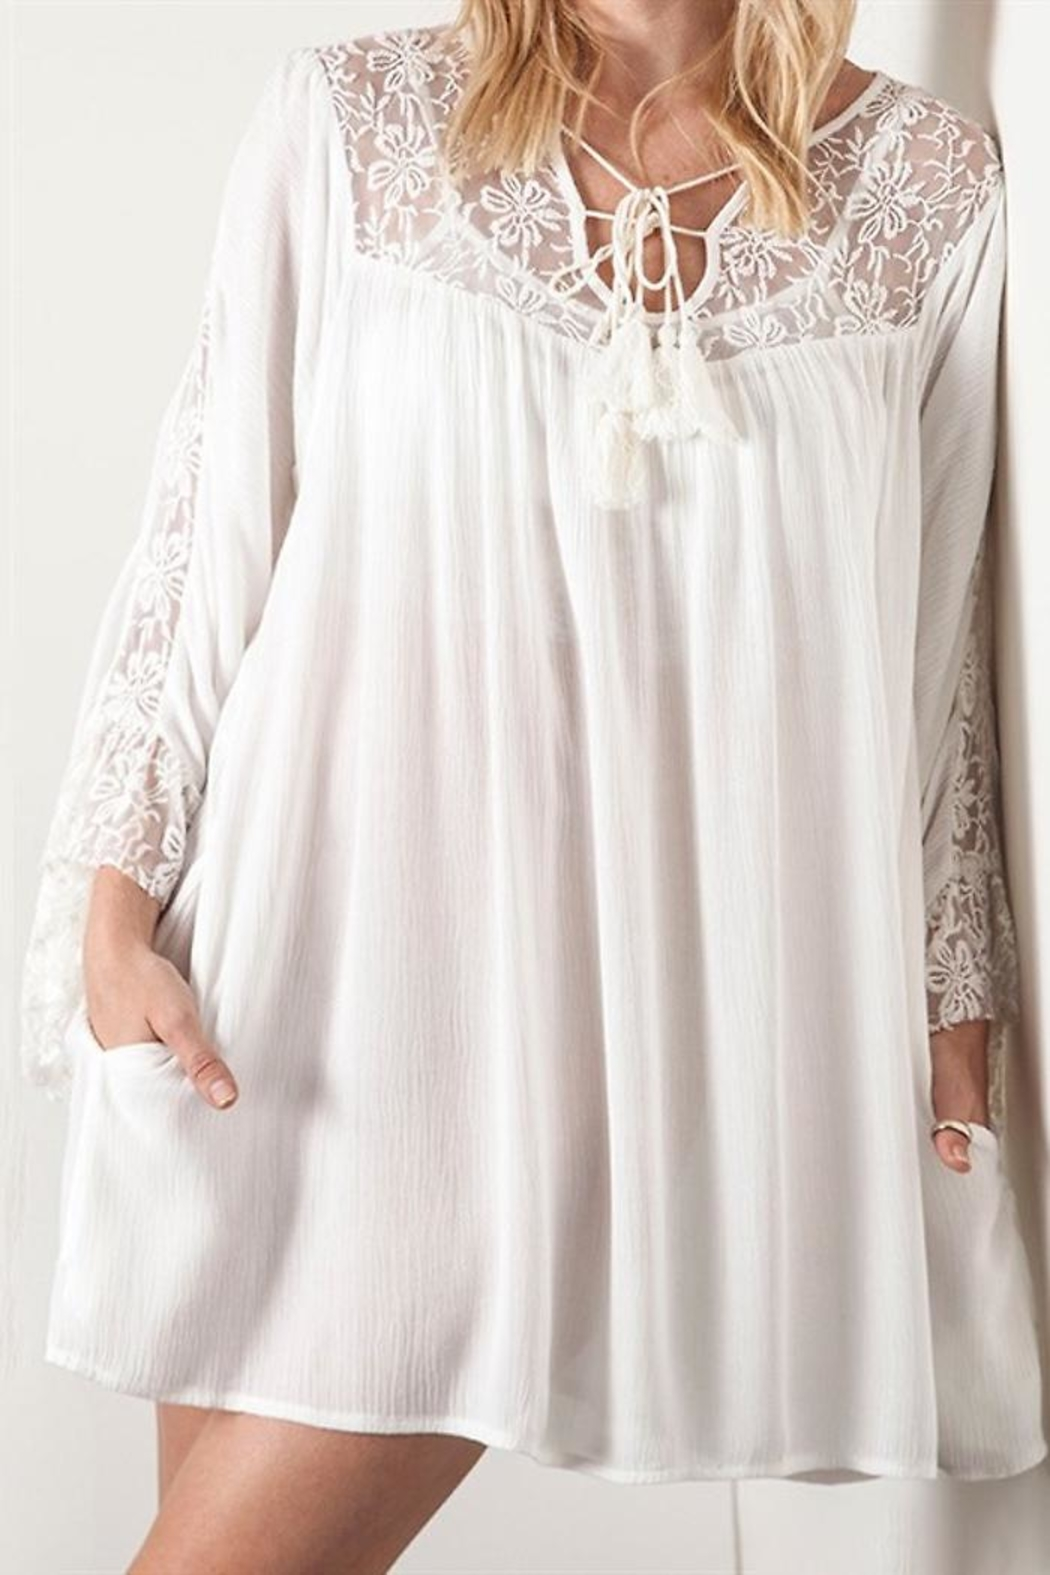 People Outfitter White Lace Dress - Front Full Image